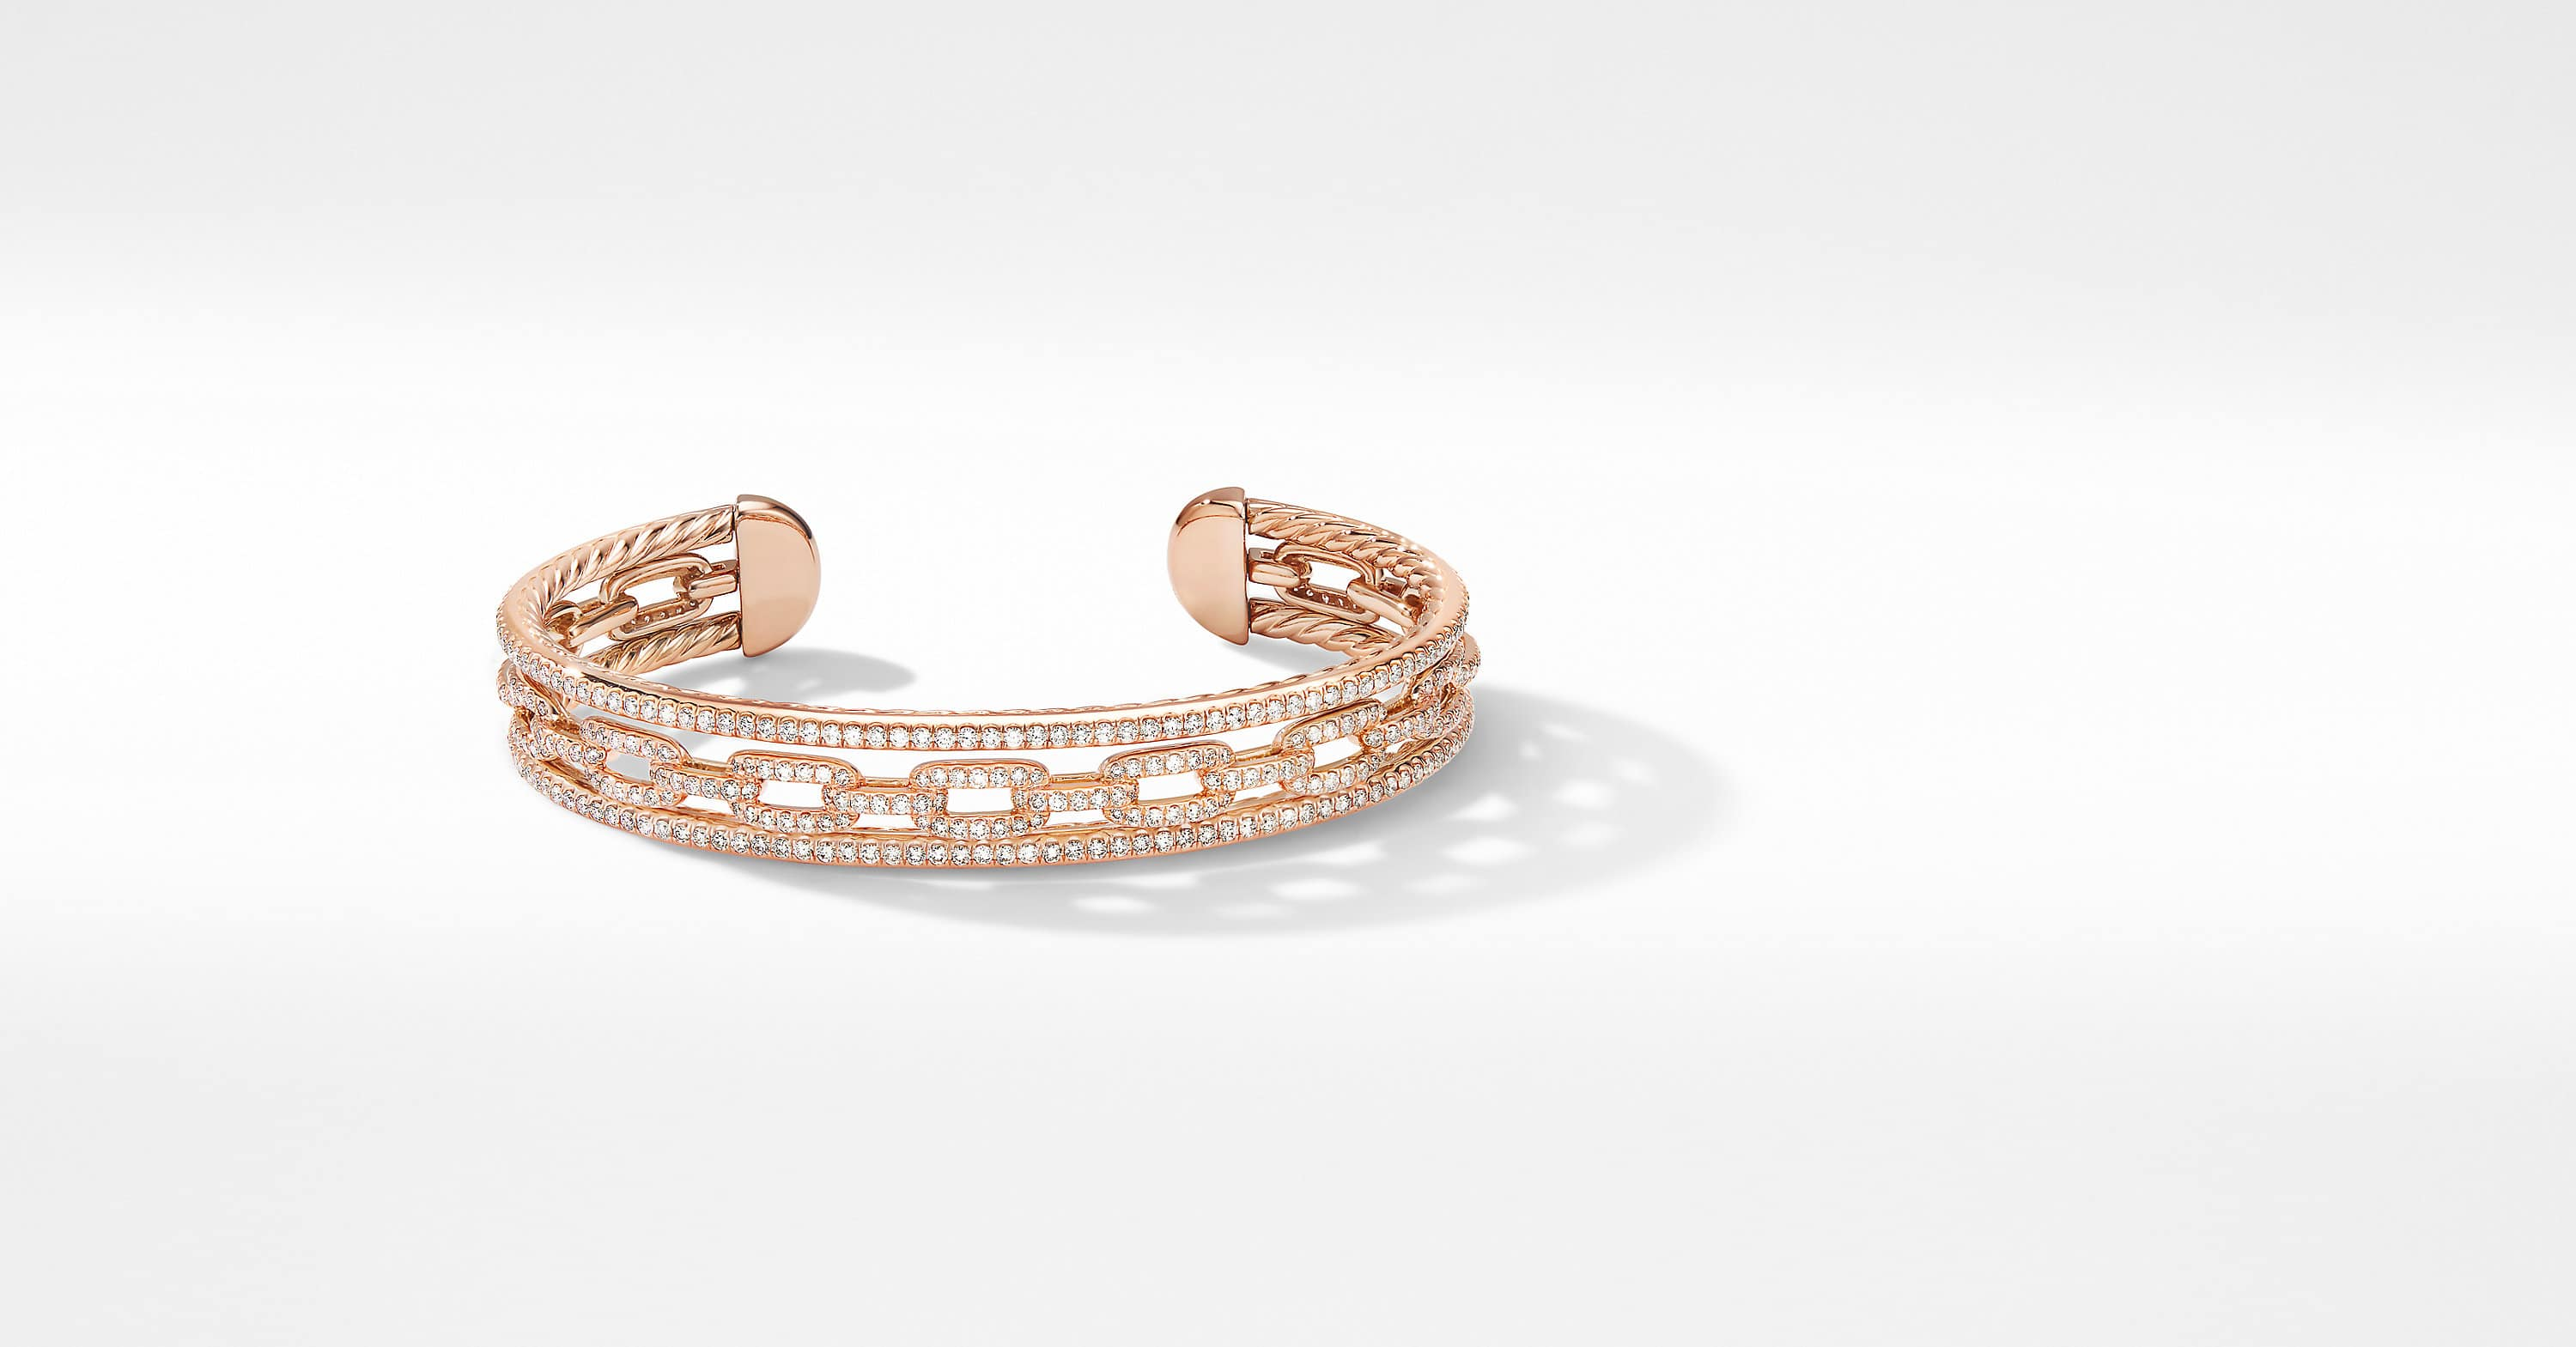 Stax Three-Row Chain Link Bracelet in 18K Rose Gold with Pavé